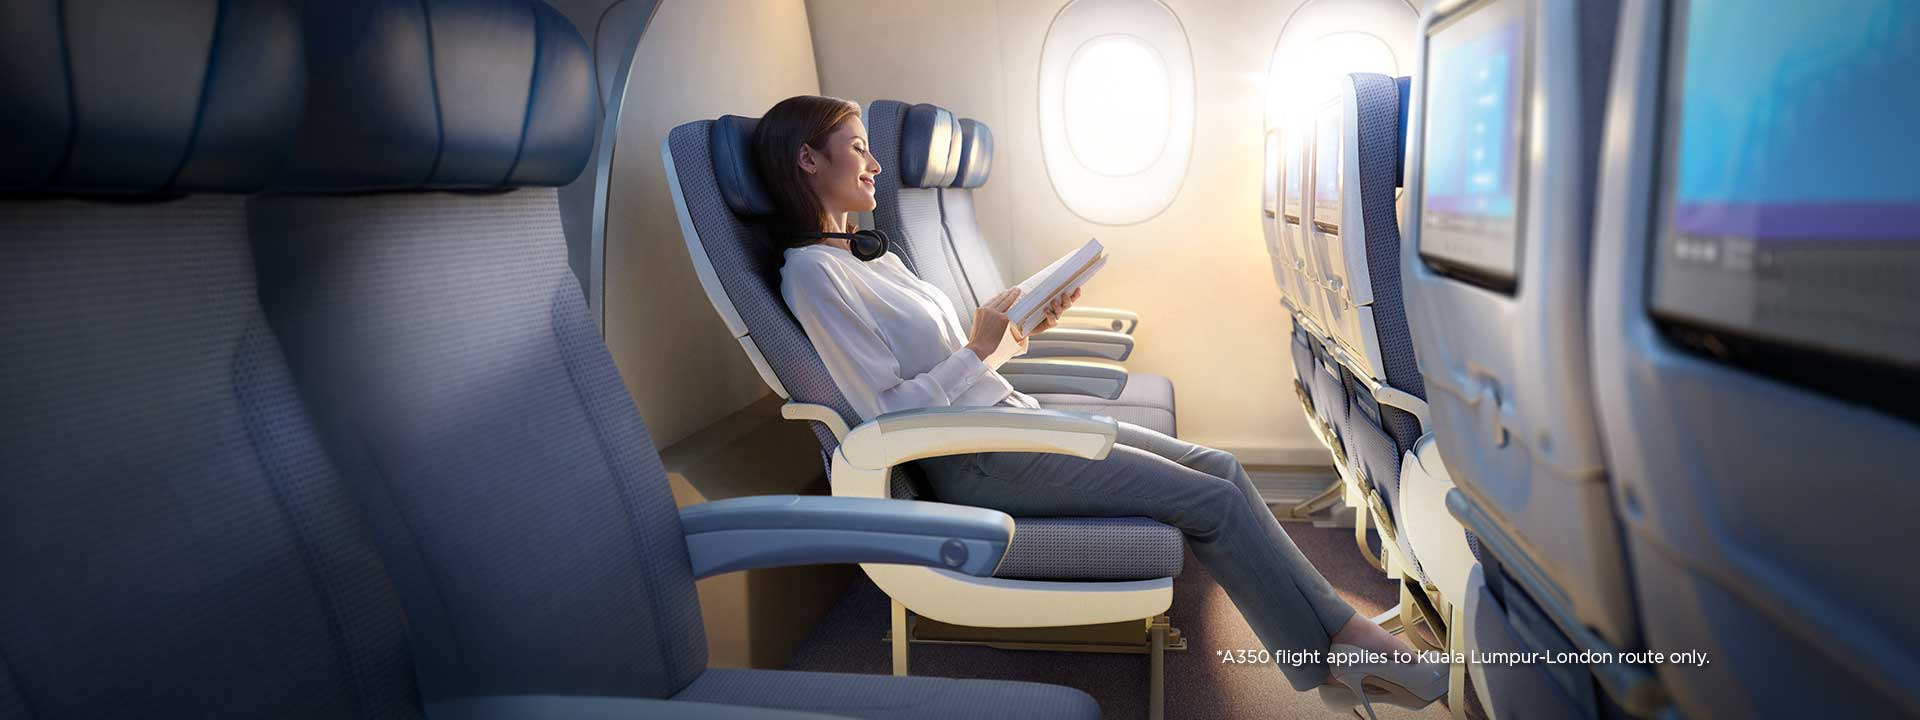 Travel to London in the spacious *A350